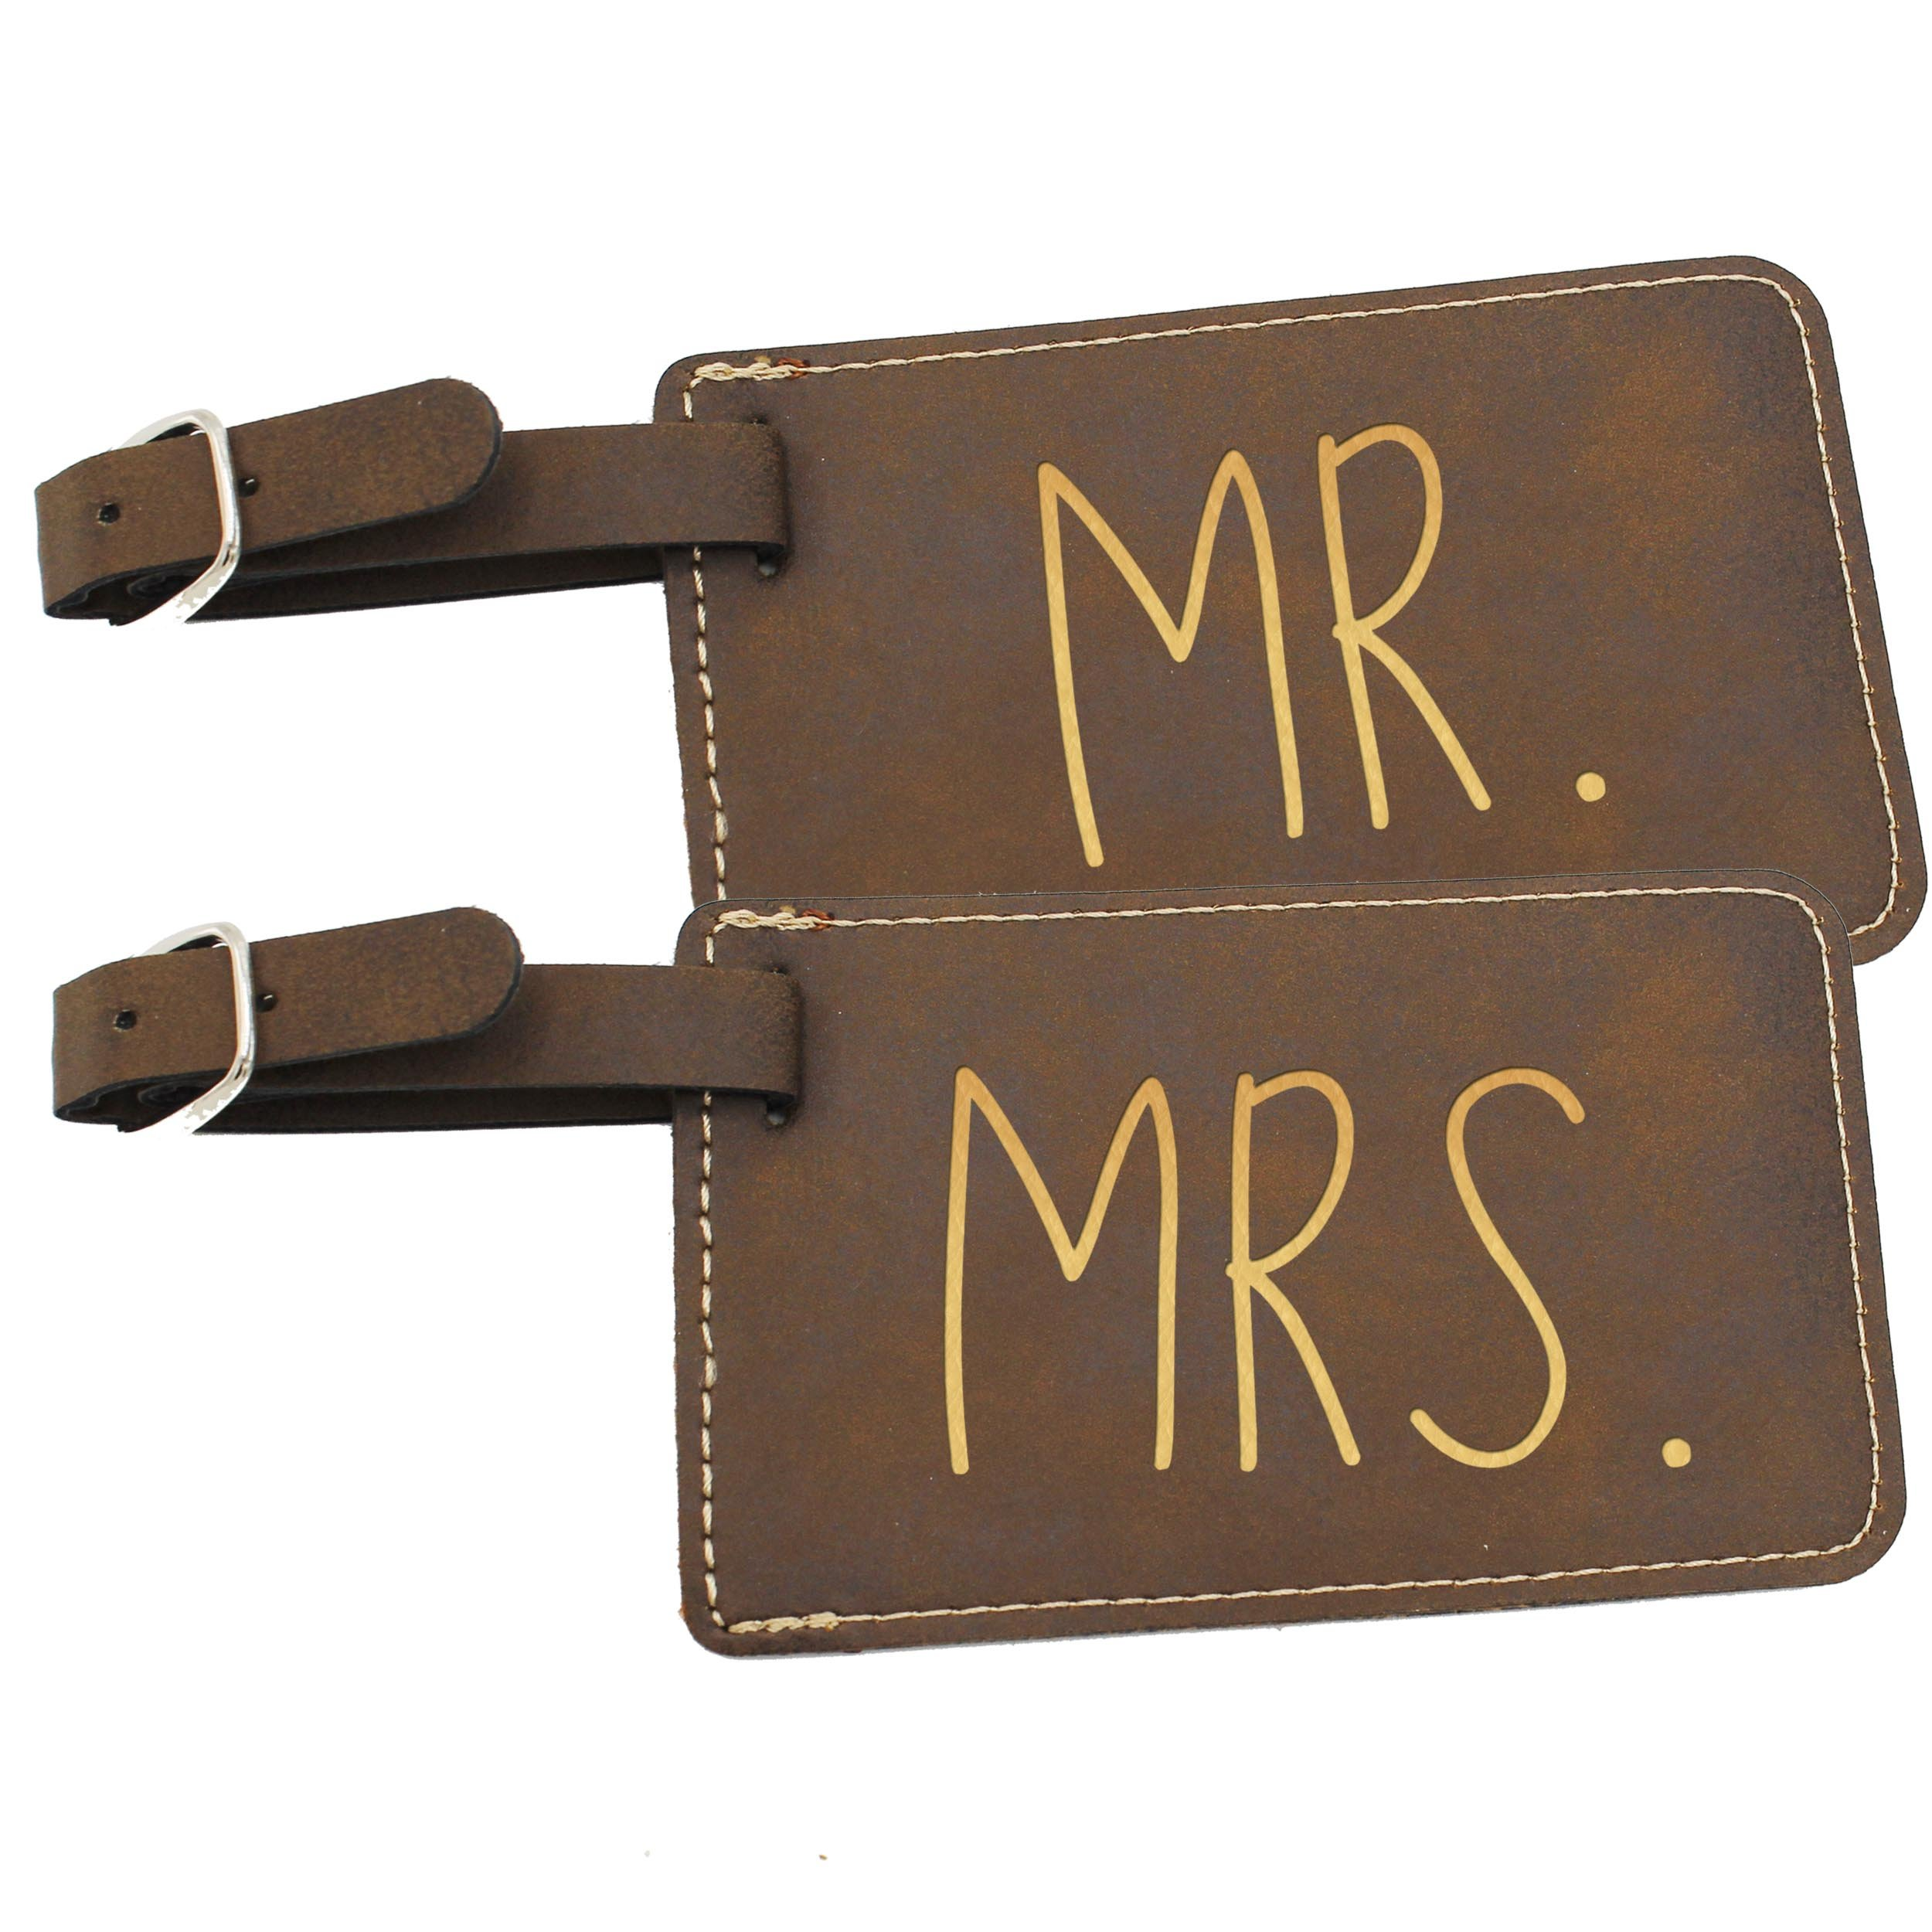 Mr and Mrs His and Hers Couples Luggage Travel Tags for Bags - Gift Set of 2 (Mr and Mrs Rawhide)